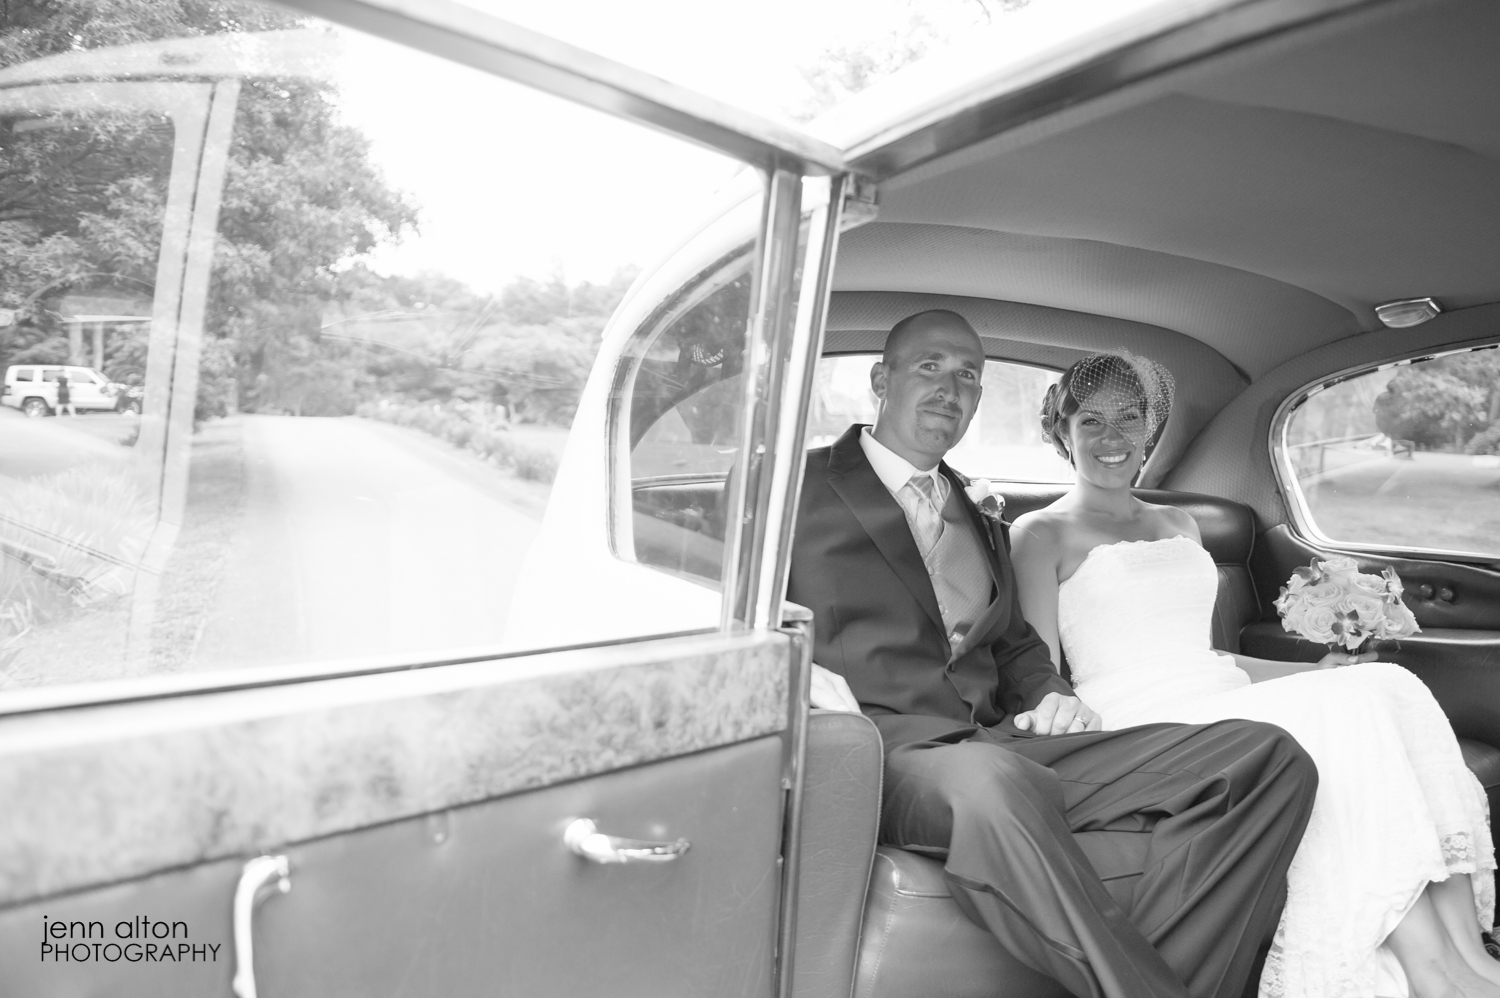 Bride and groom in Rolls Royce, Cape Cod Wedding, Mashpee Old Indian Meeting House